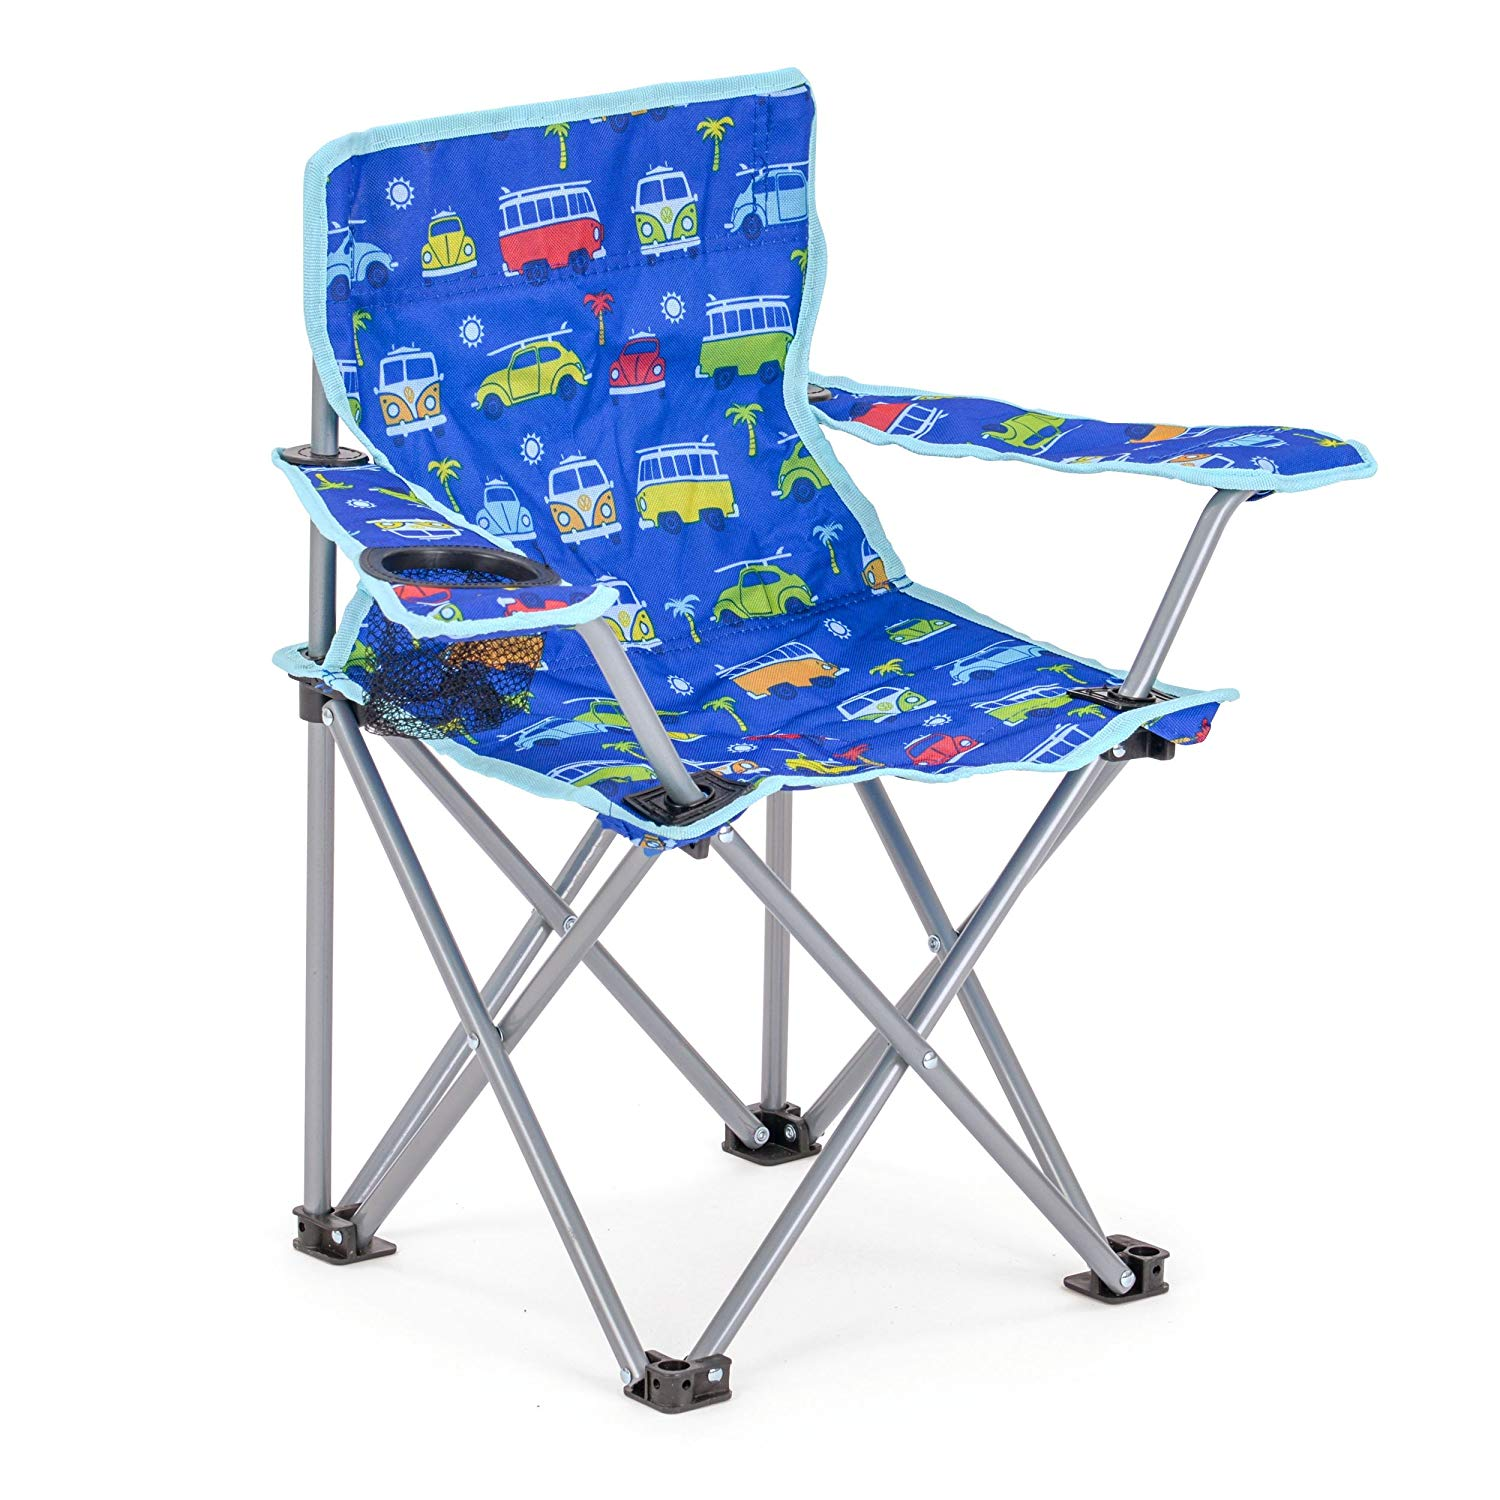 Kids Camping Chair (Front View)